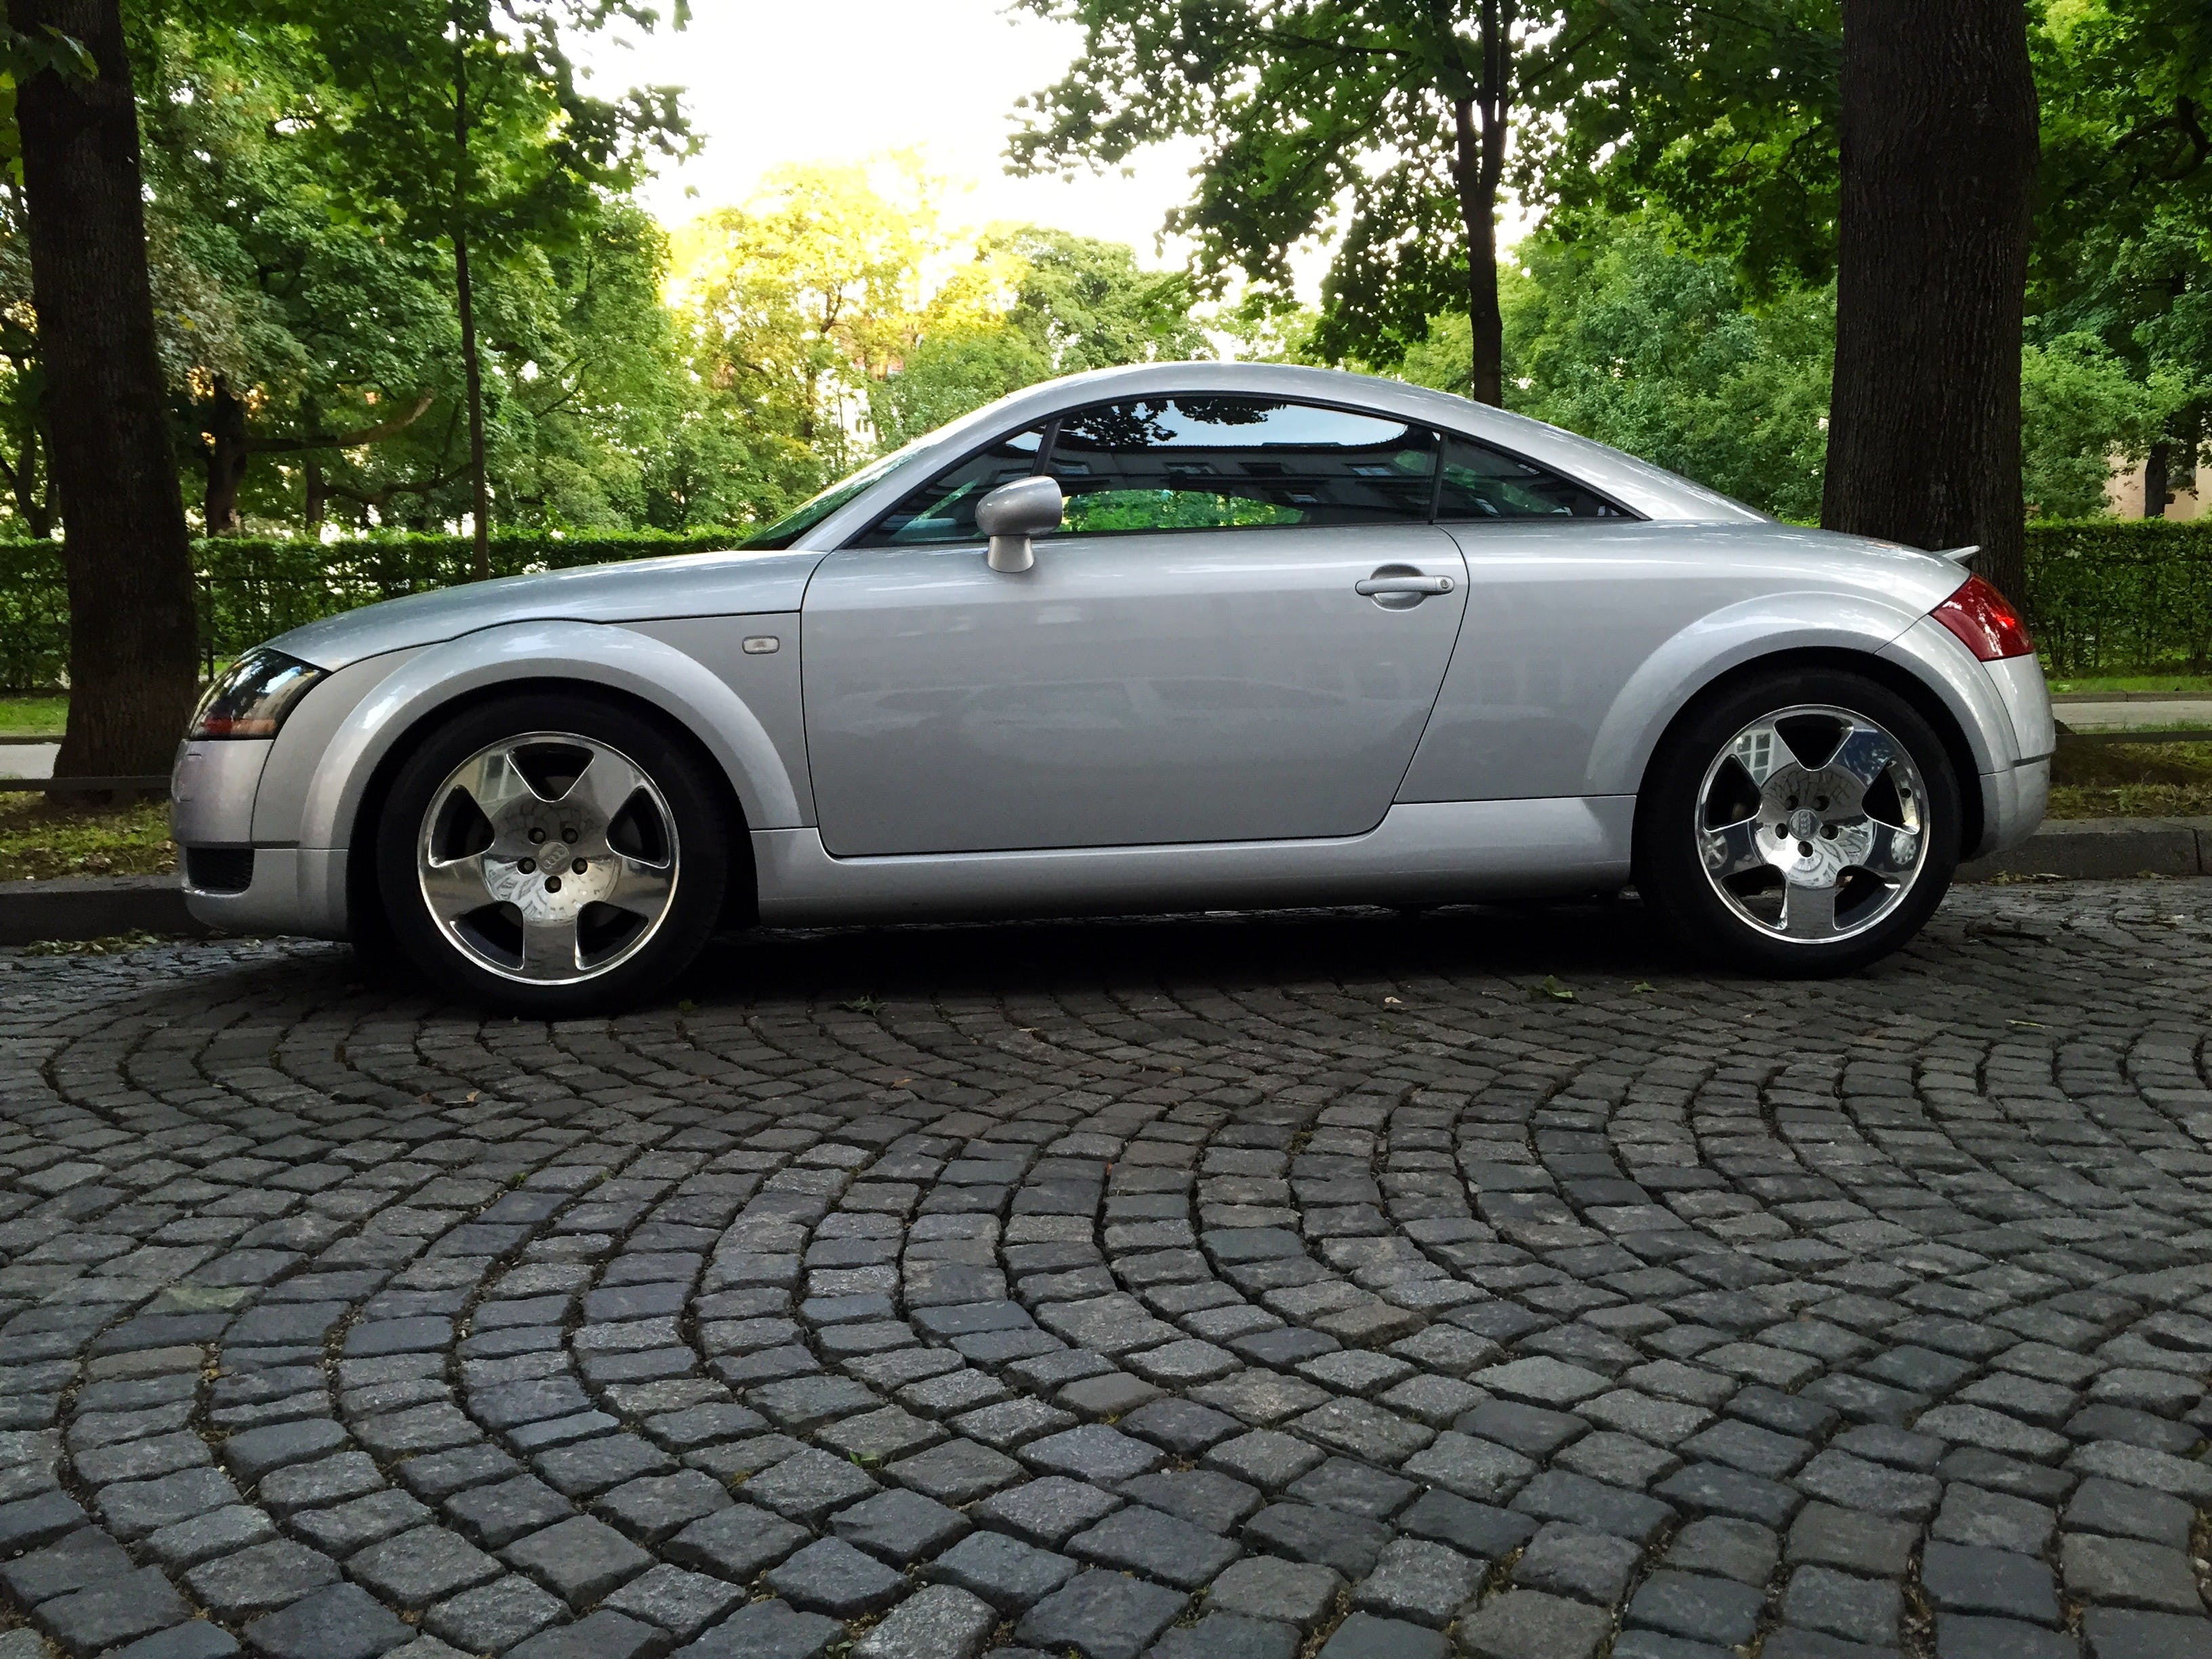 Audi TT Coupé 20V Turbo S-Line